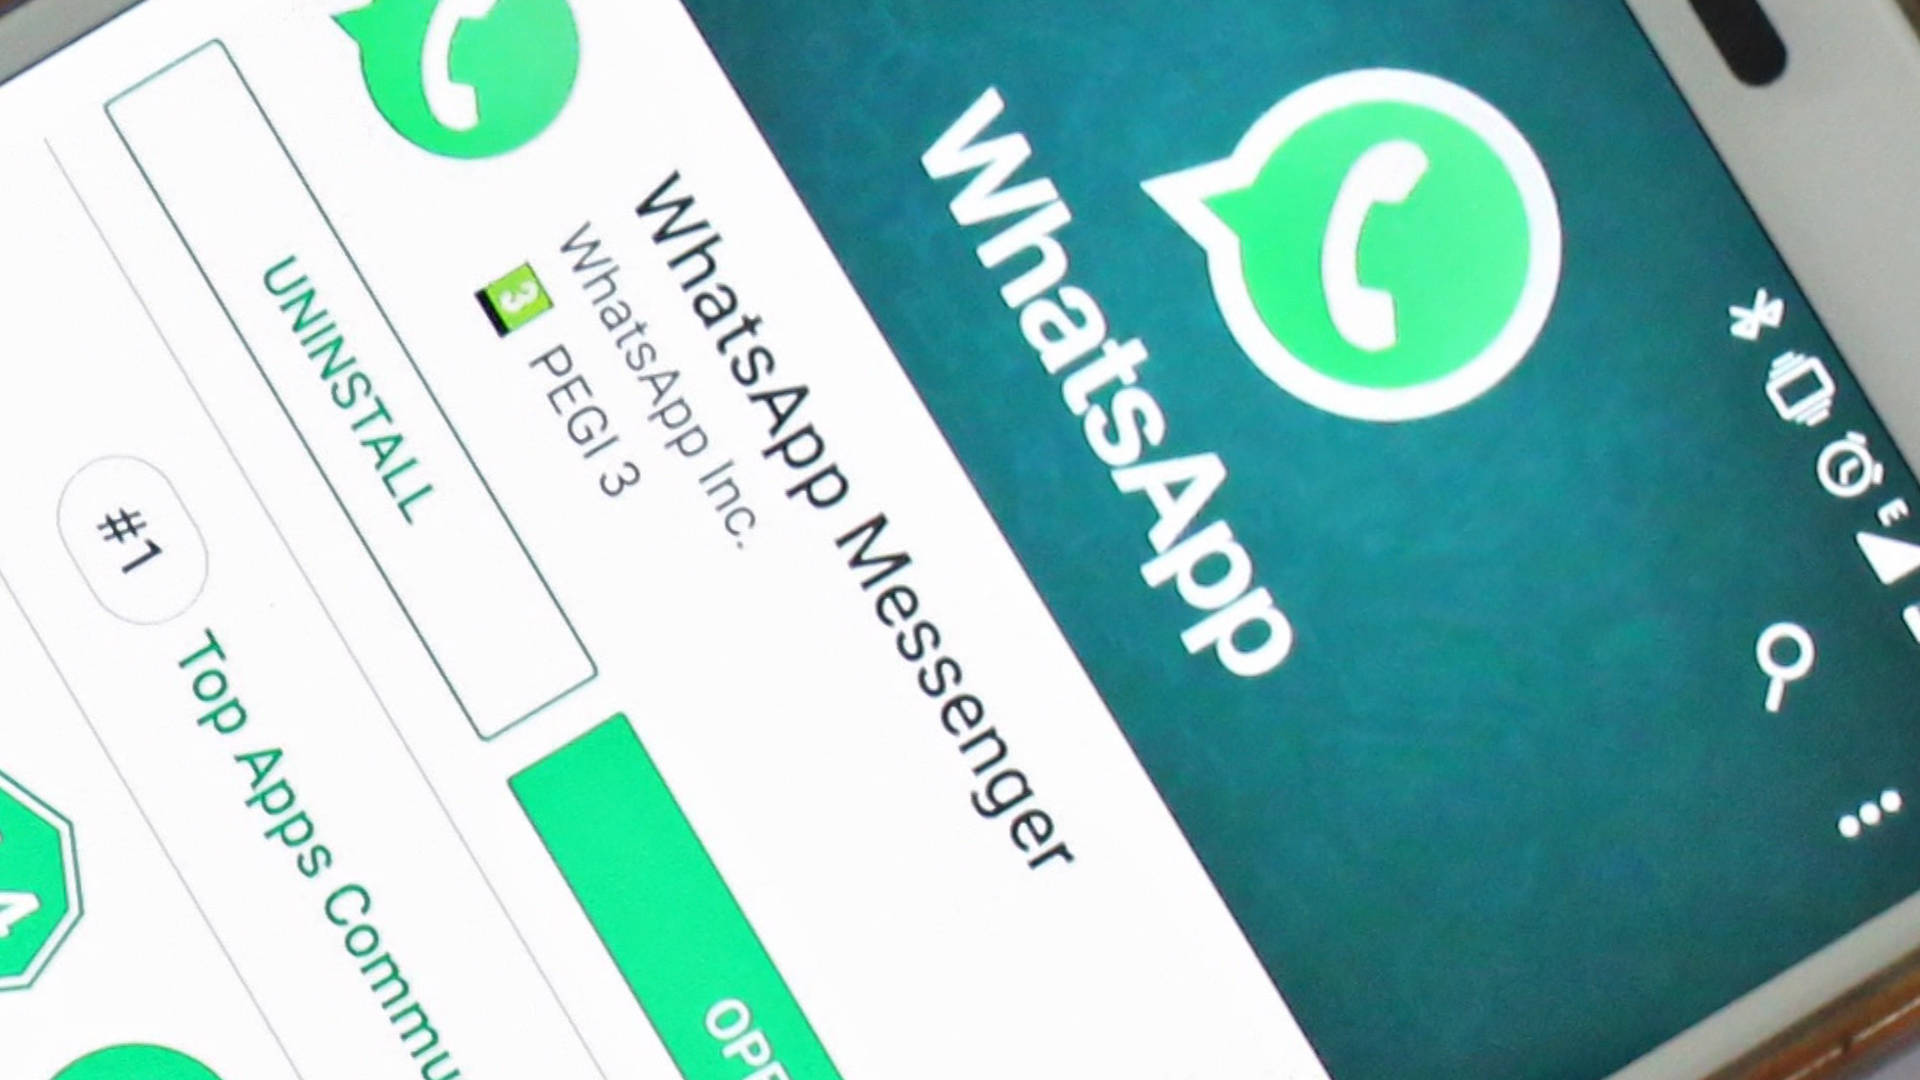 Reports: Israeli Security Firm NSO Group Hacked Whatsapp